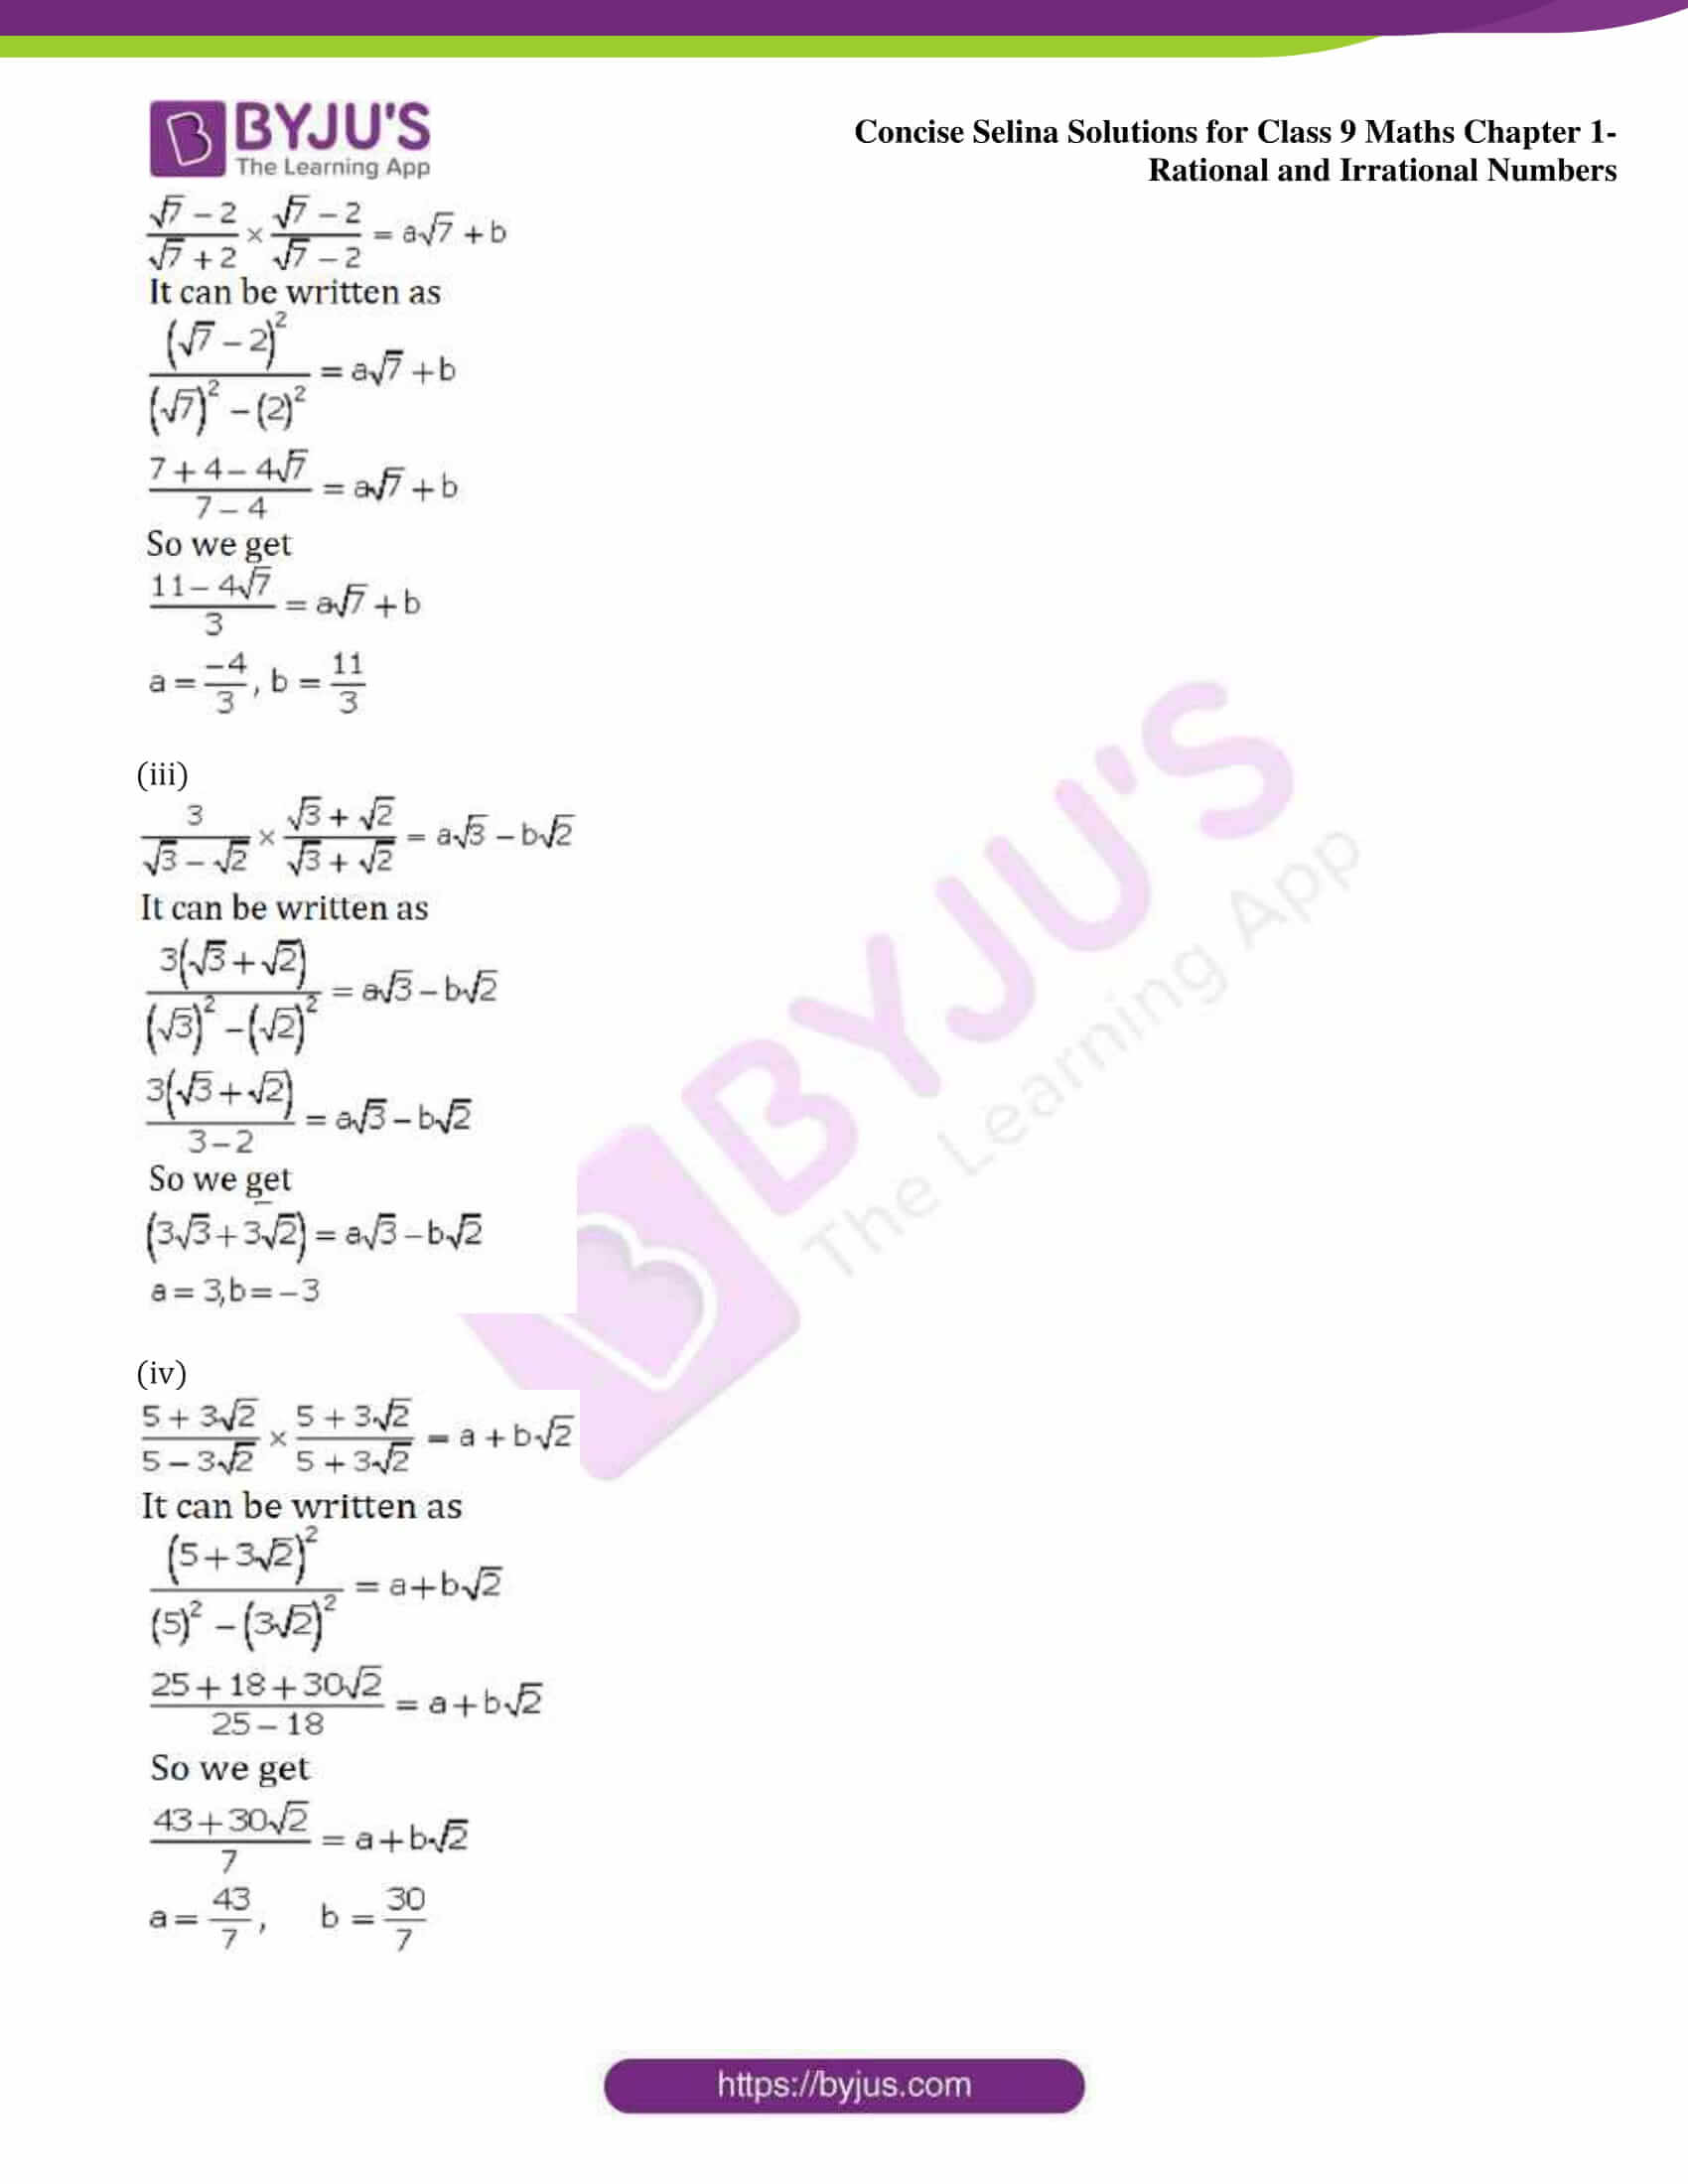 icse class 9 maths may13 selina solutions chapter 1 rational and irrational numbers 21